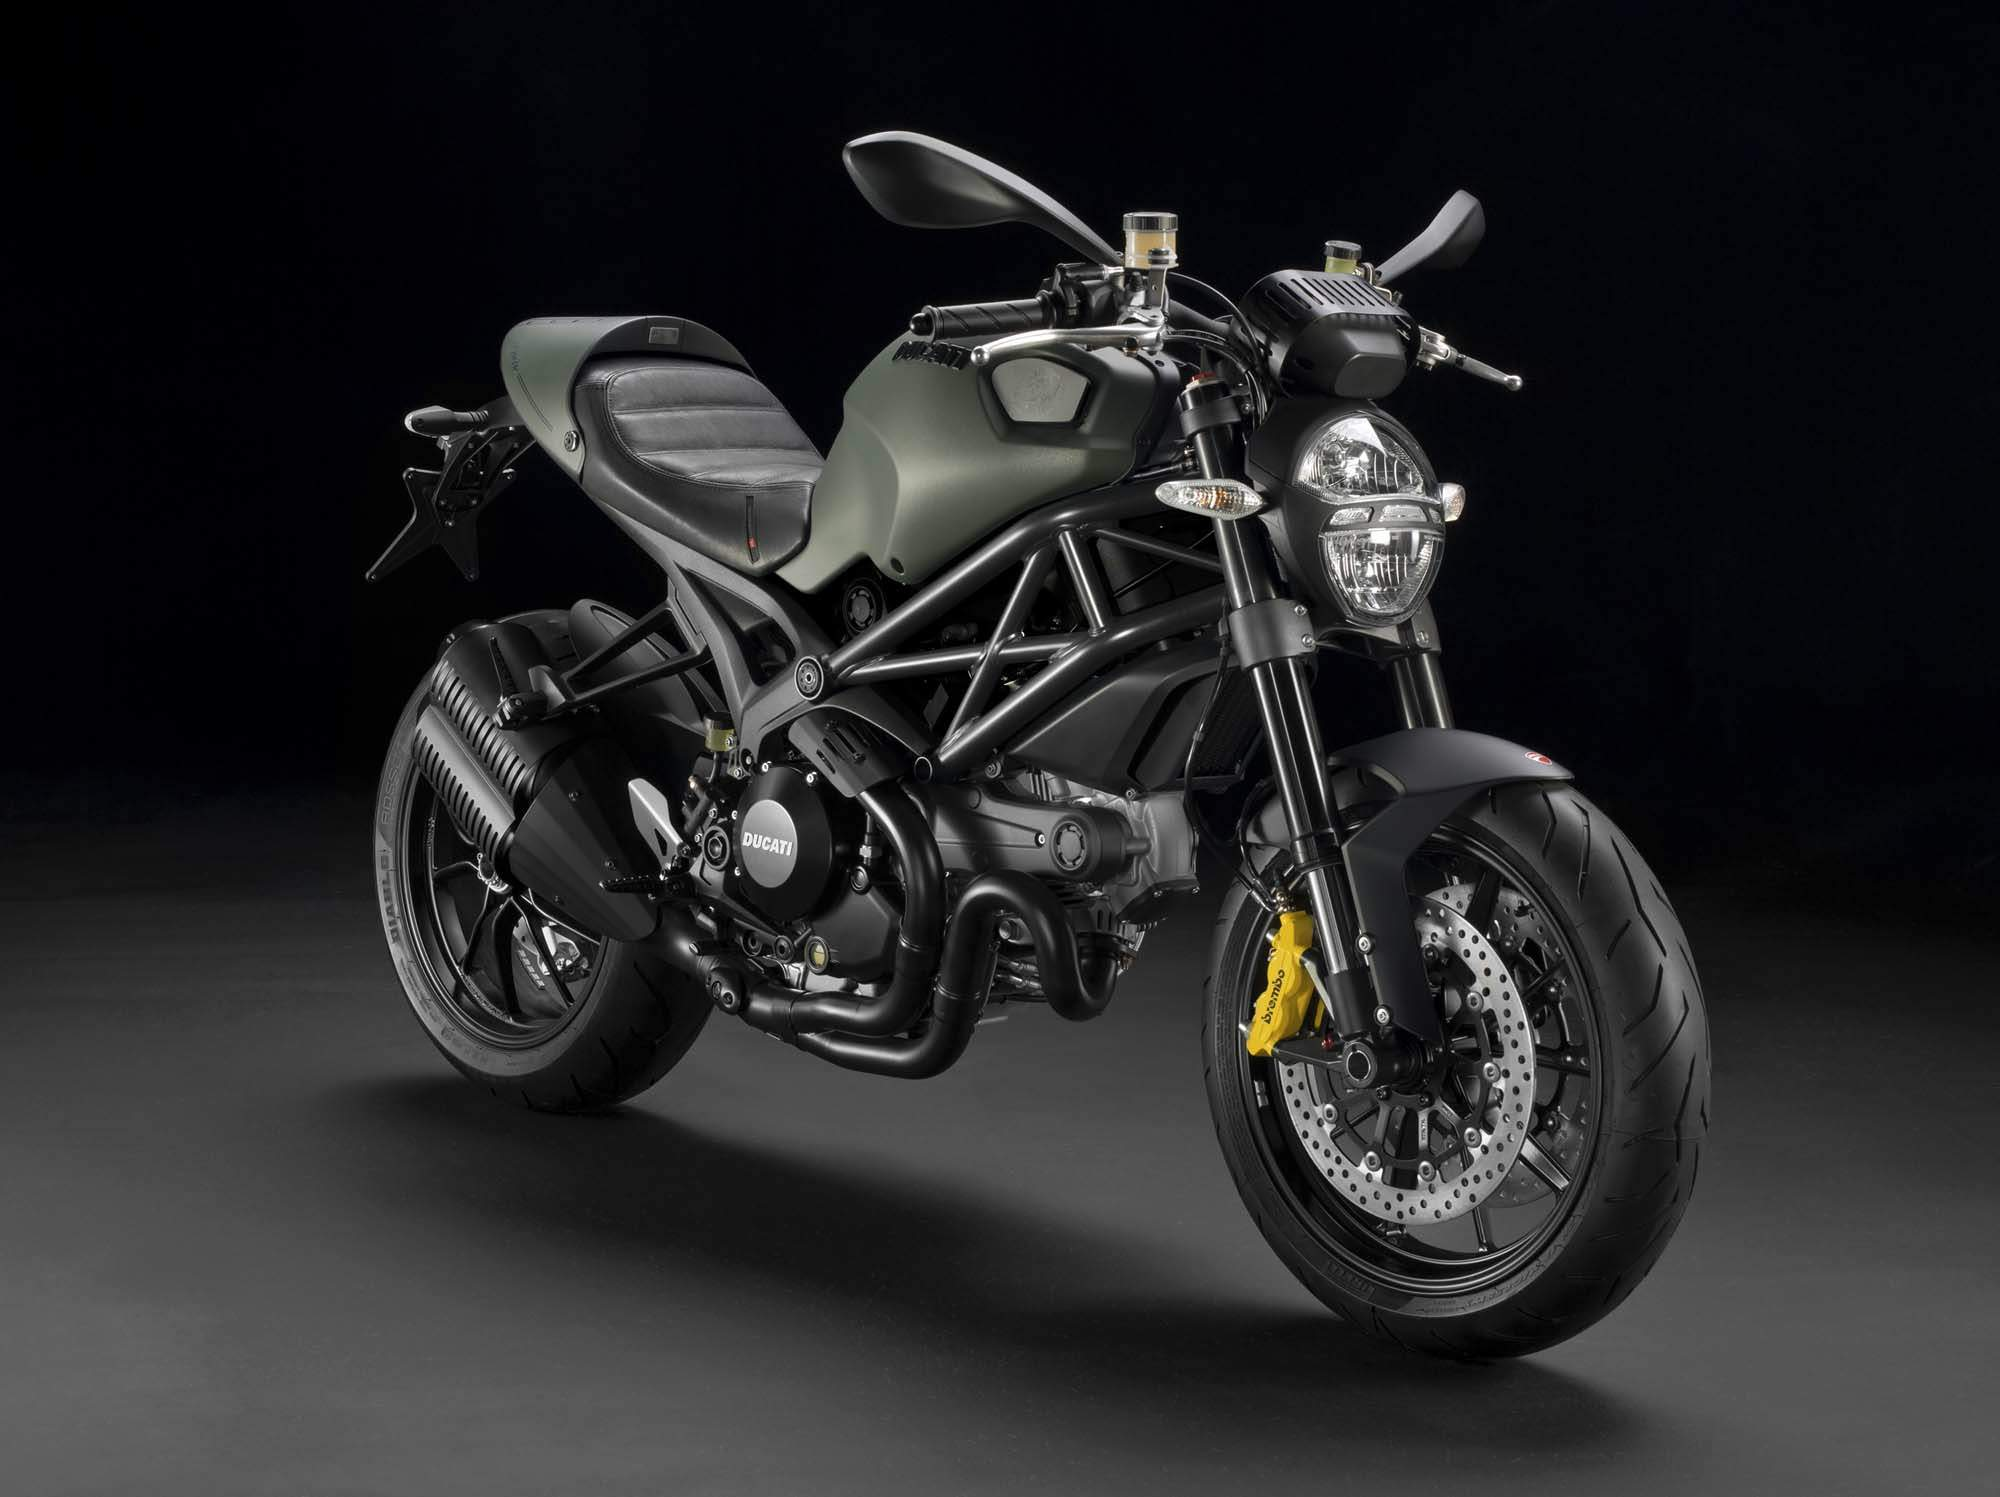 Ducati panigale v4 special edition a closer look | visordown.